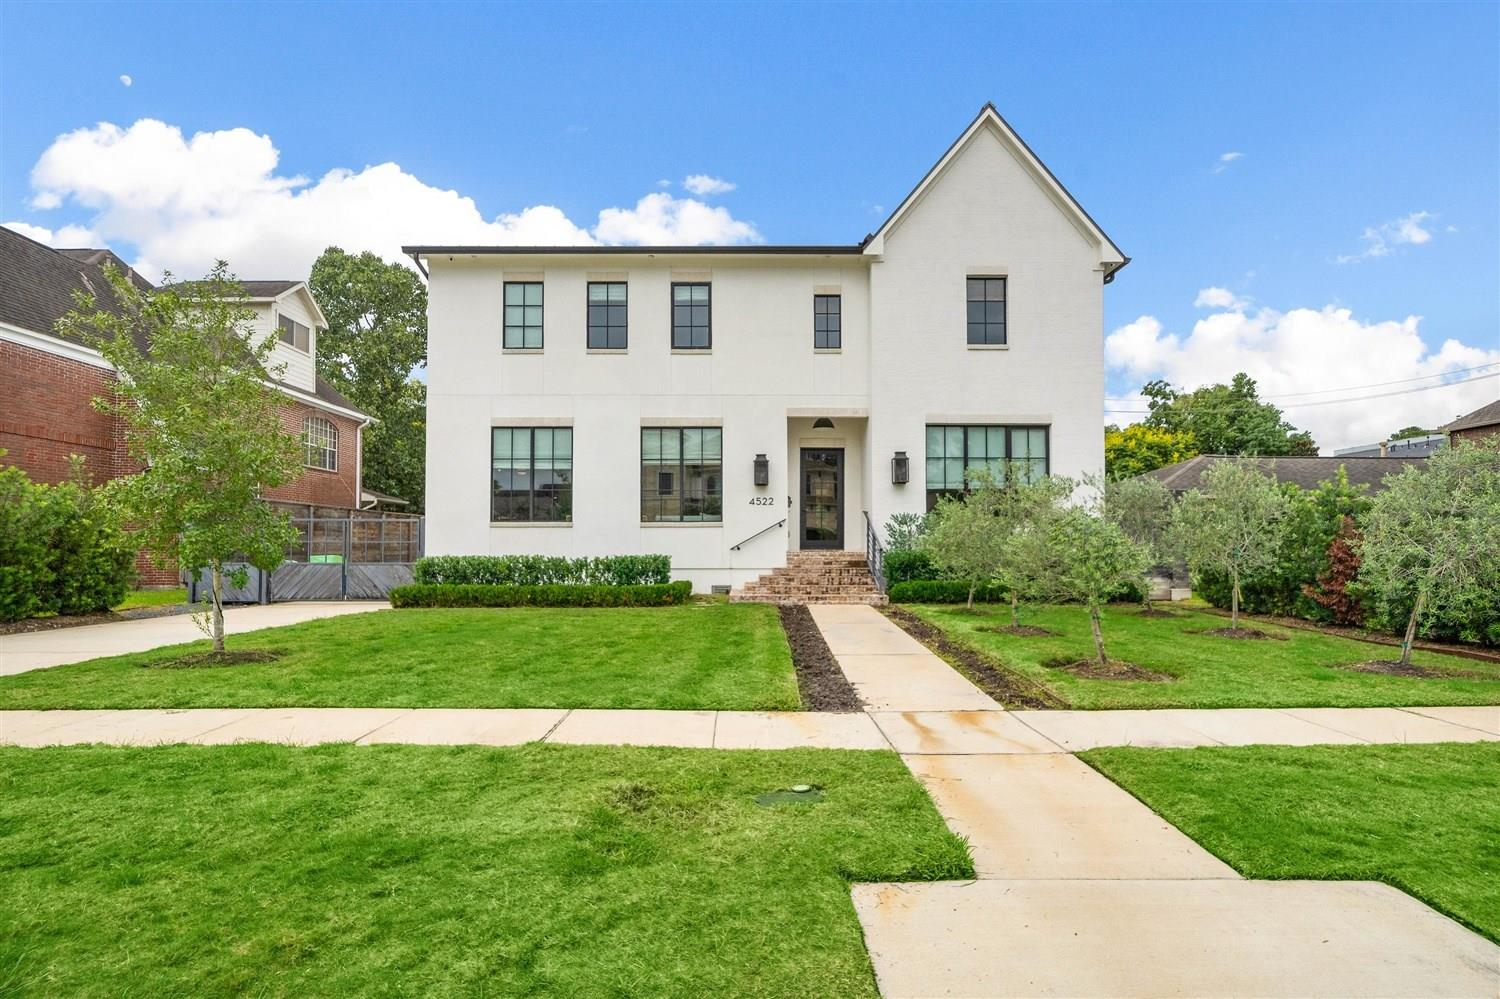 4522 Merrie Lane Property Photo - Bellaire, TX real estate listing